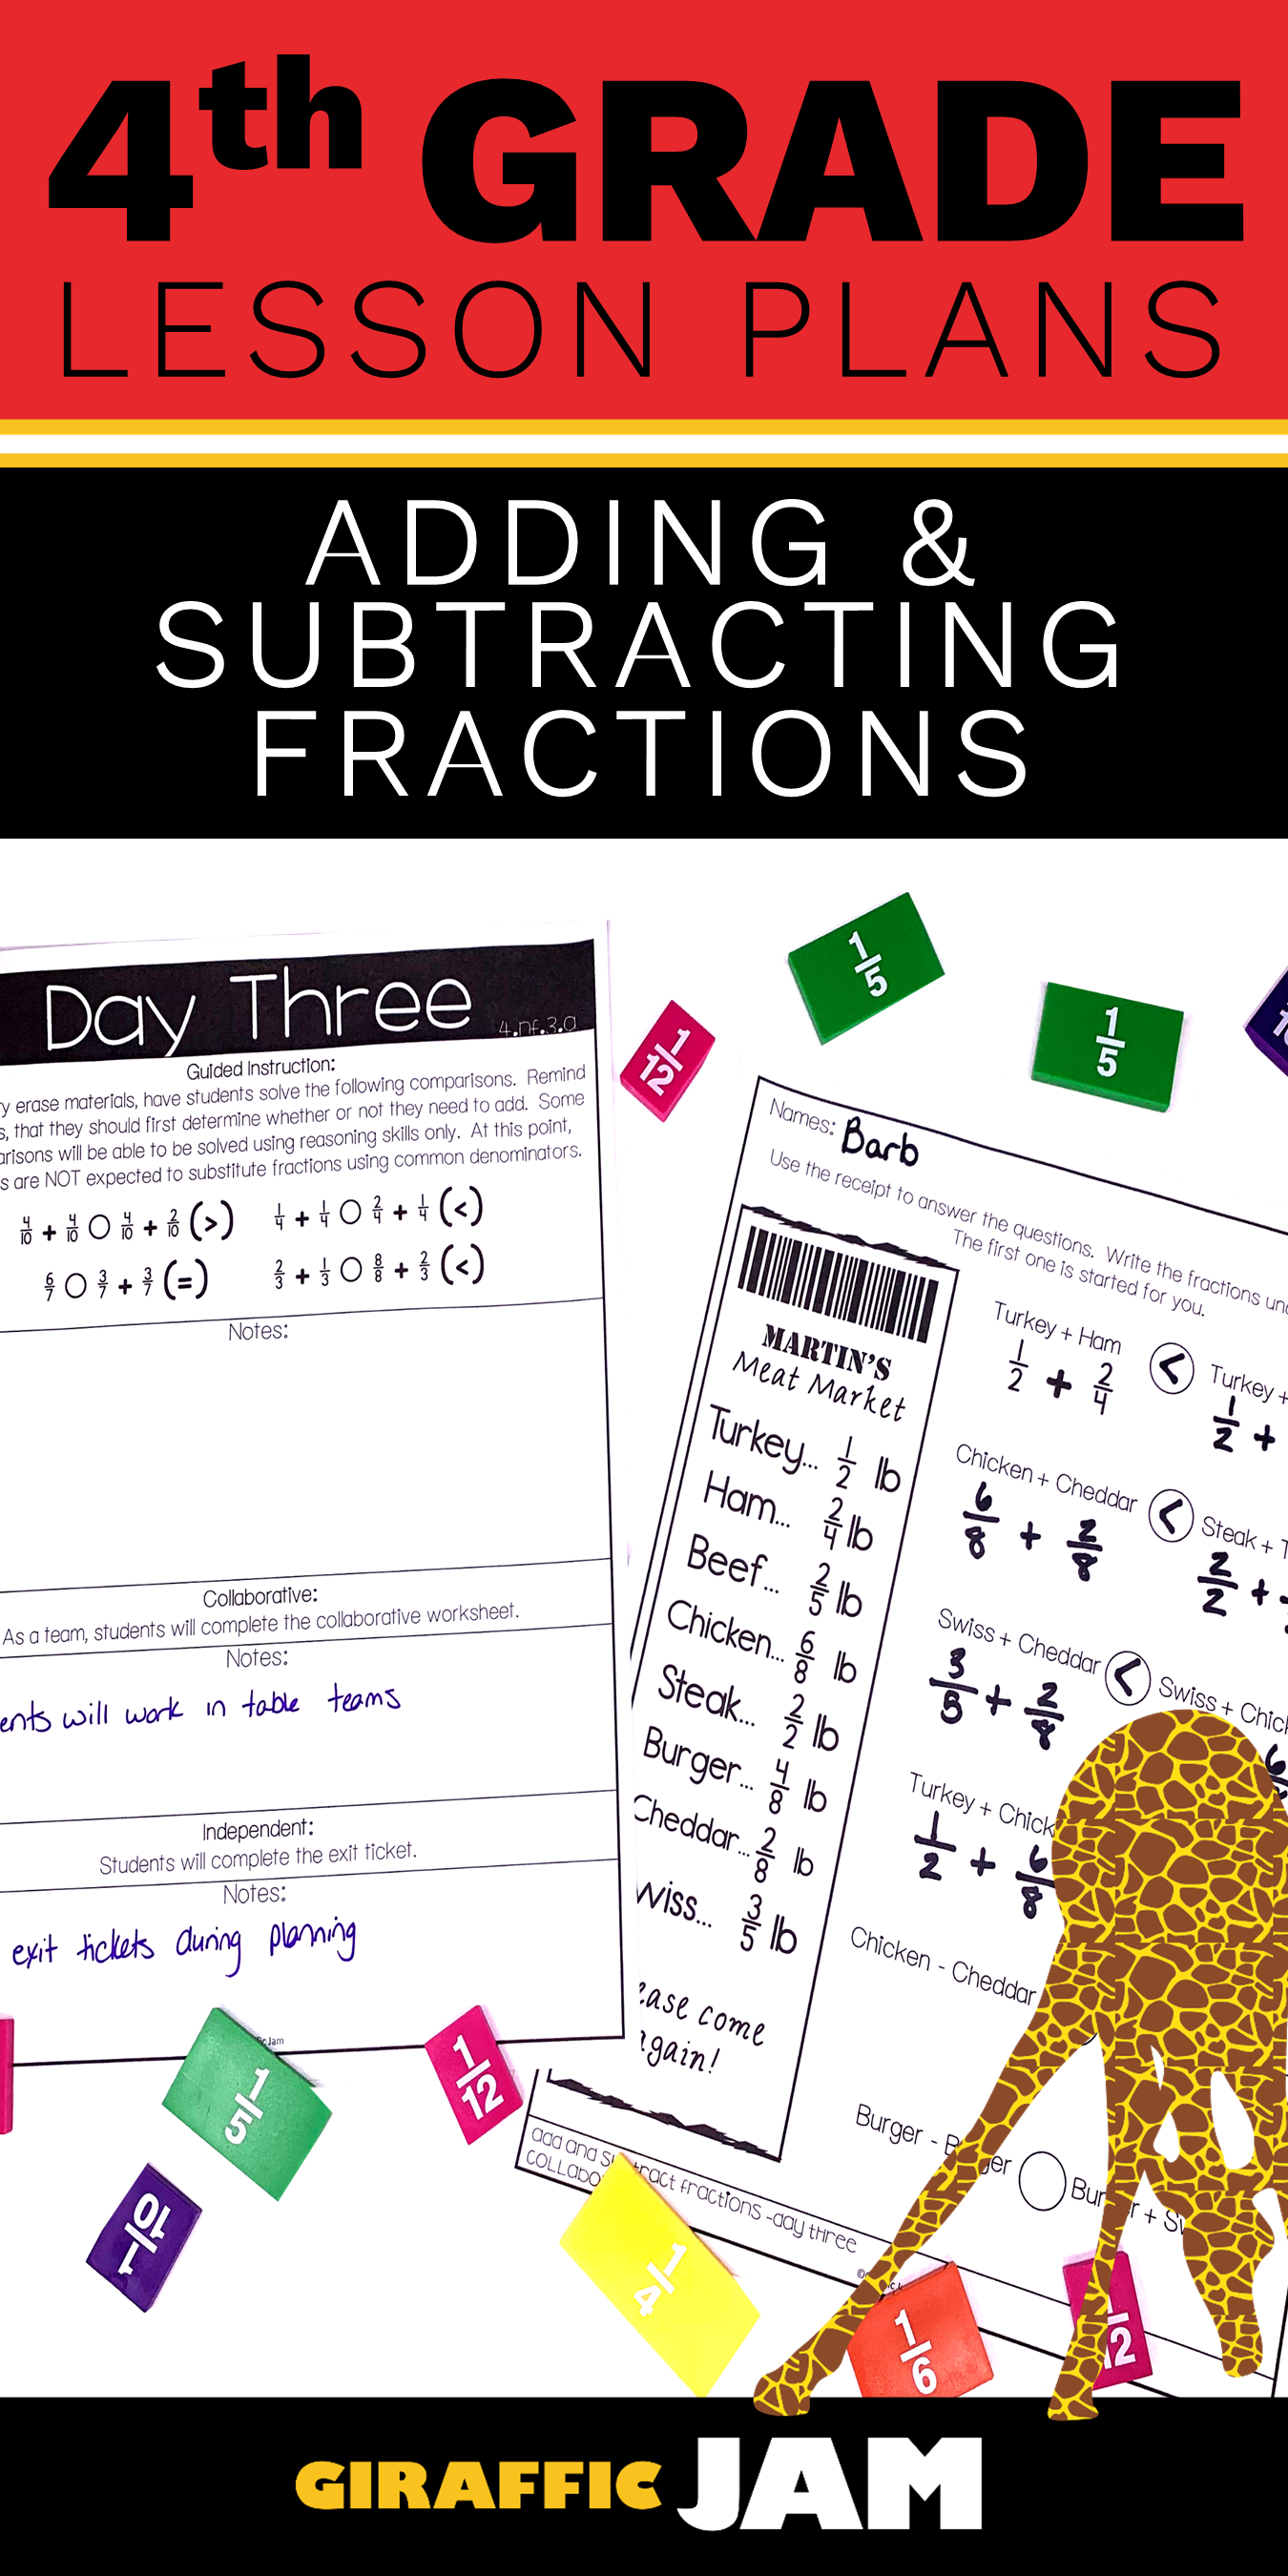 Adding And Subtracting Fractions 4th Grade Lesson Plans